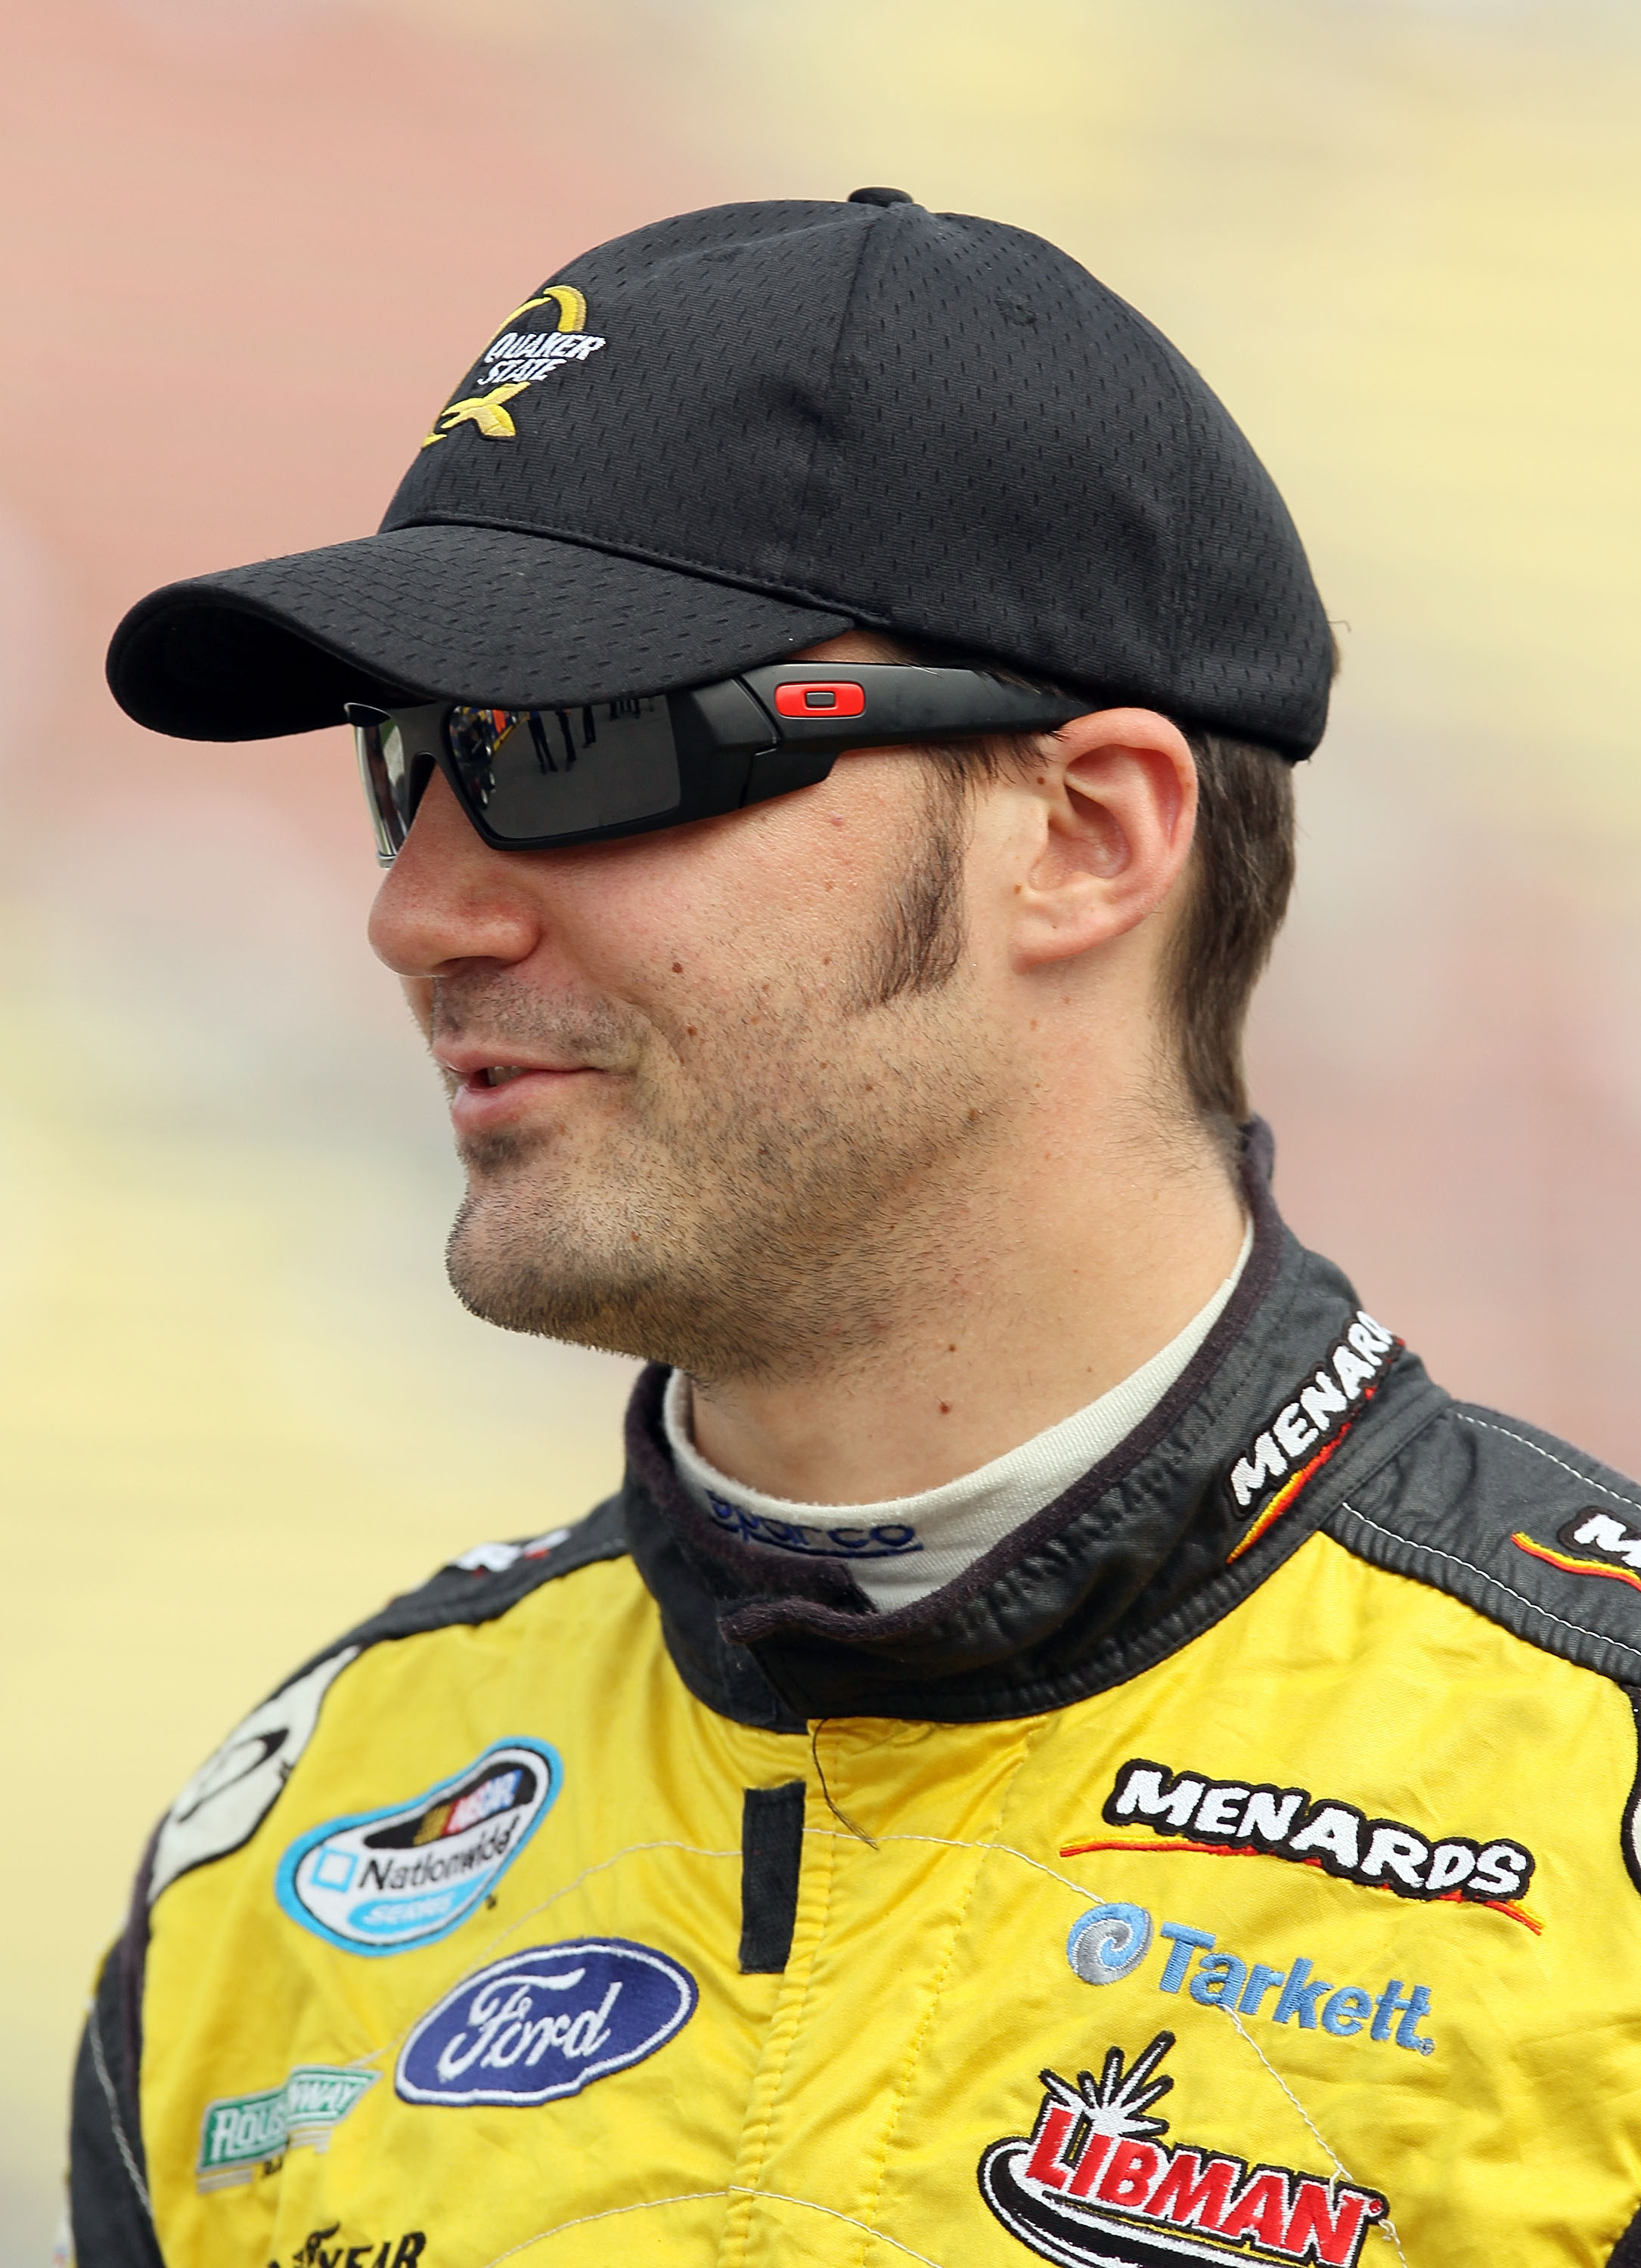 BROOKLYN, MI - AUGUST 14:  Paul Menard, driver of #98 the Richmond / Menards, looks on during qualifying for the NASCAR Nationwide Series CARFAX 250 at Michigan International Speedway on August 14, 2010 in Brooklyn, Michigan.  (Photo by Elsa/Getty Images)